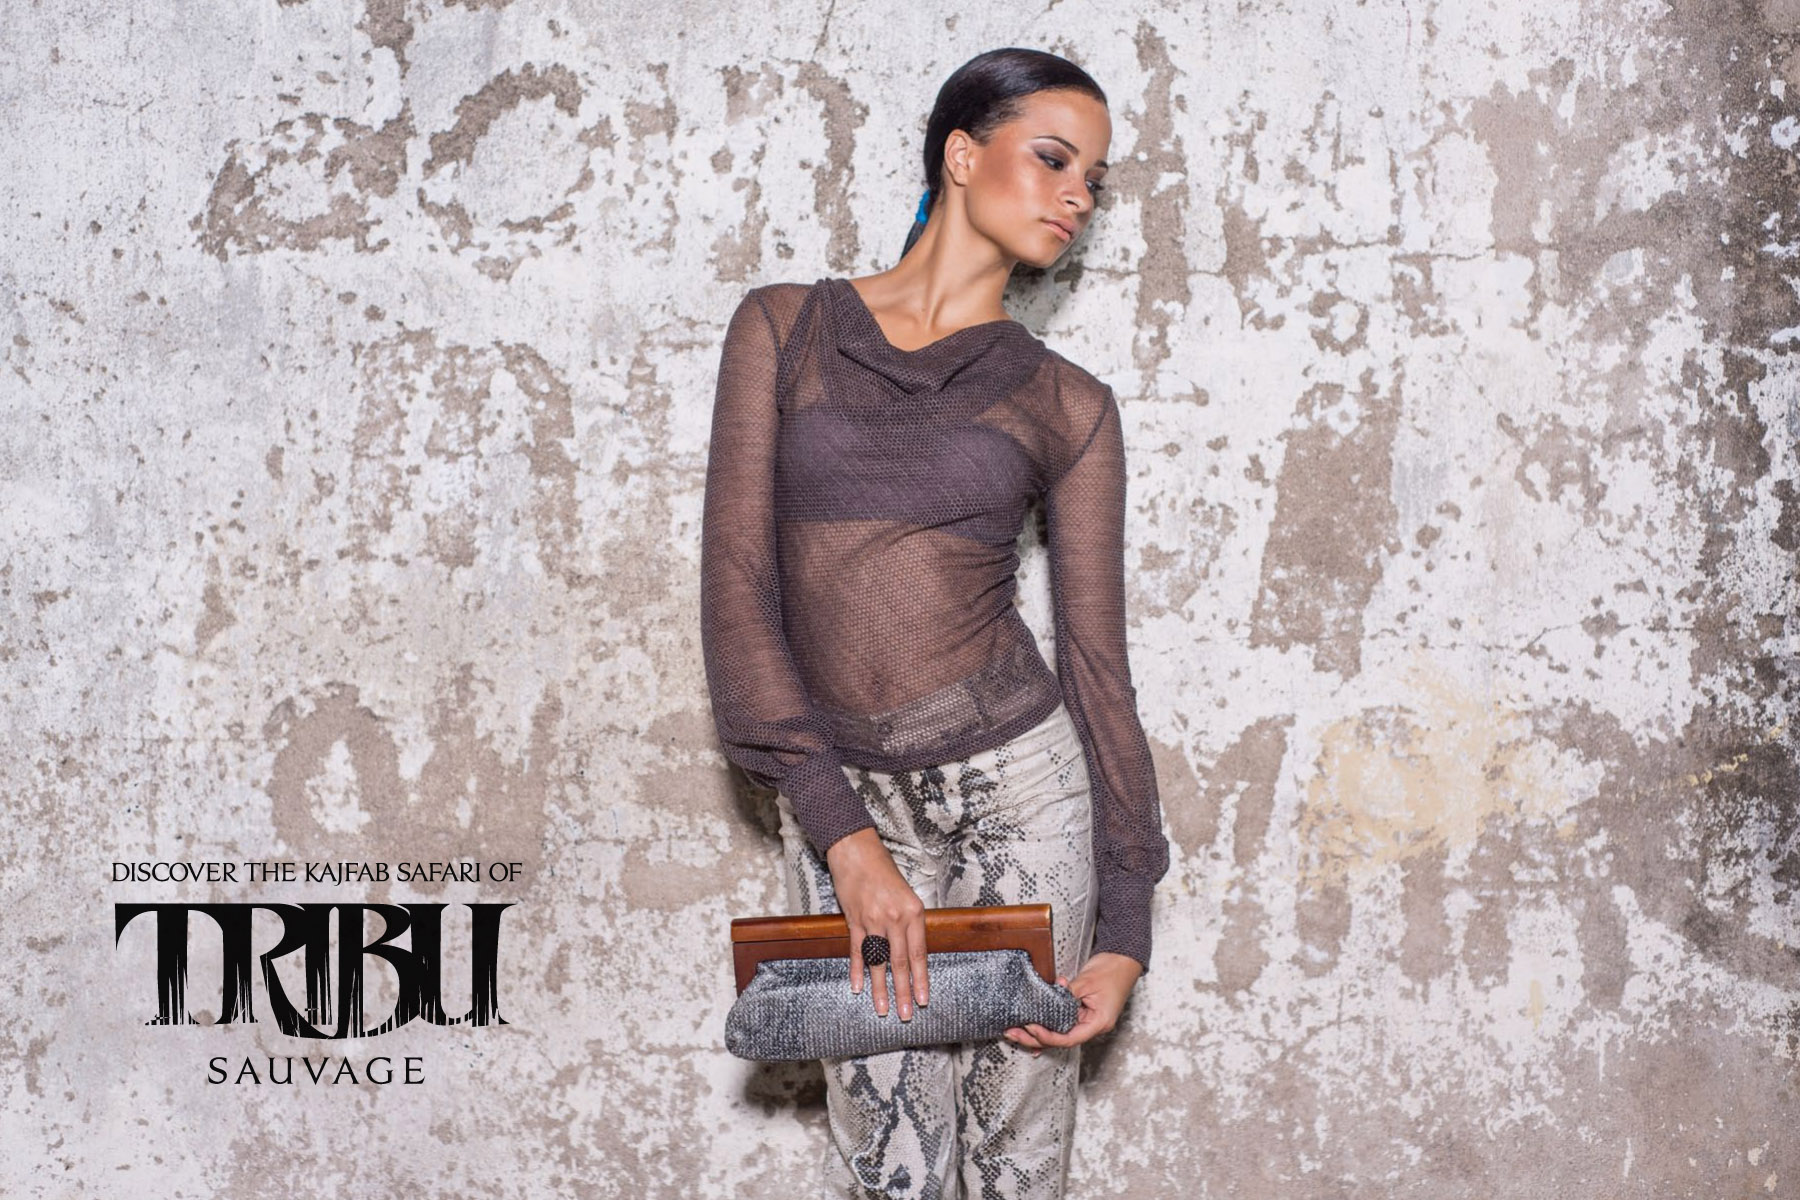 Kaj Resort 13/14 collection, Tribu Sauvage. Cowl peasant blouse and classic waxed linen trousers.